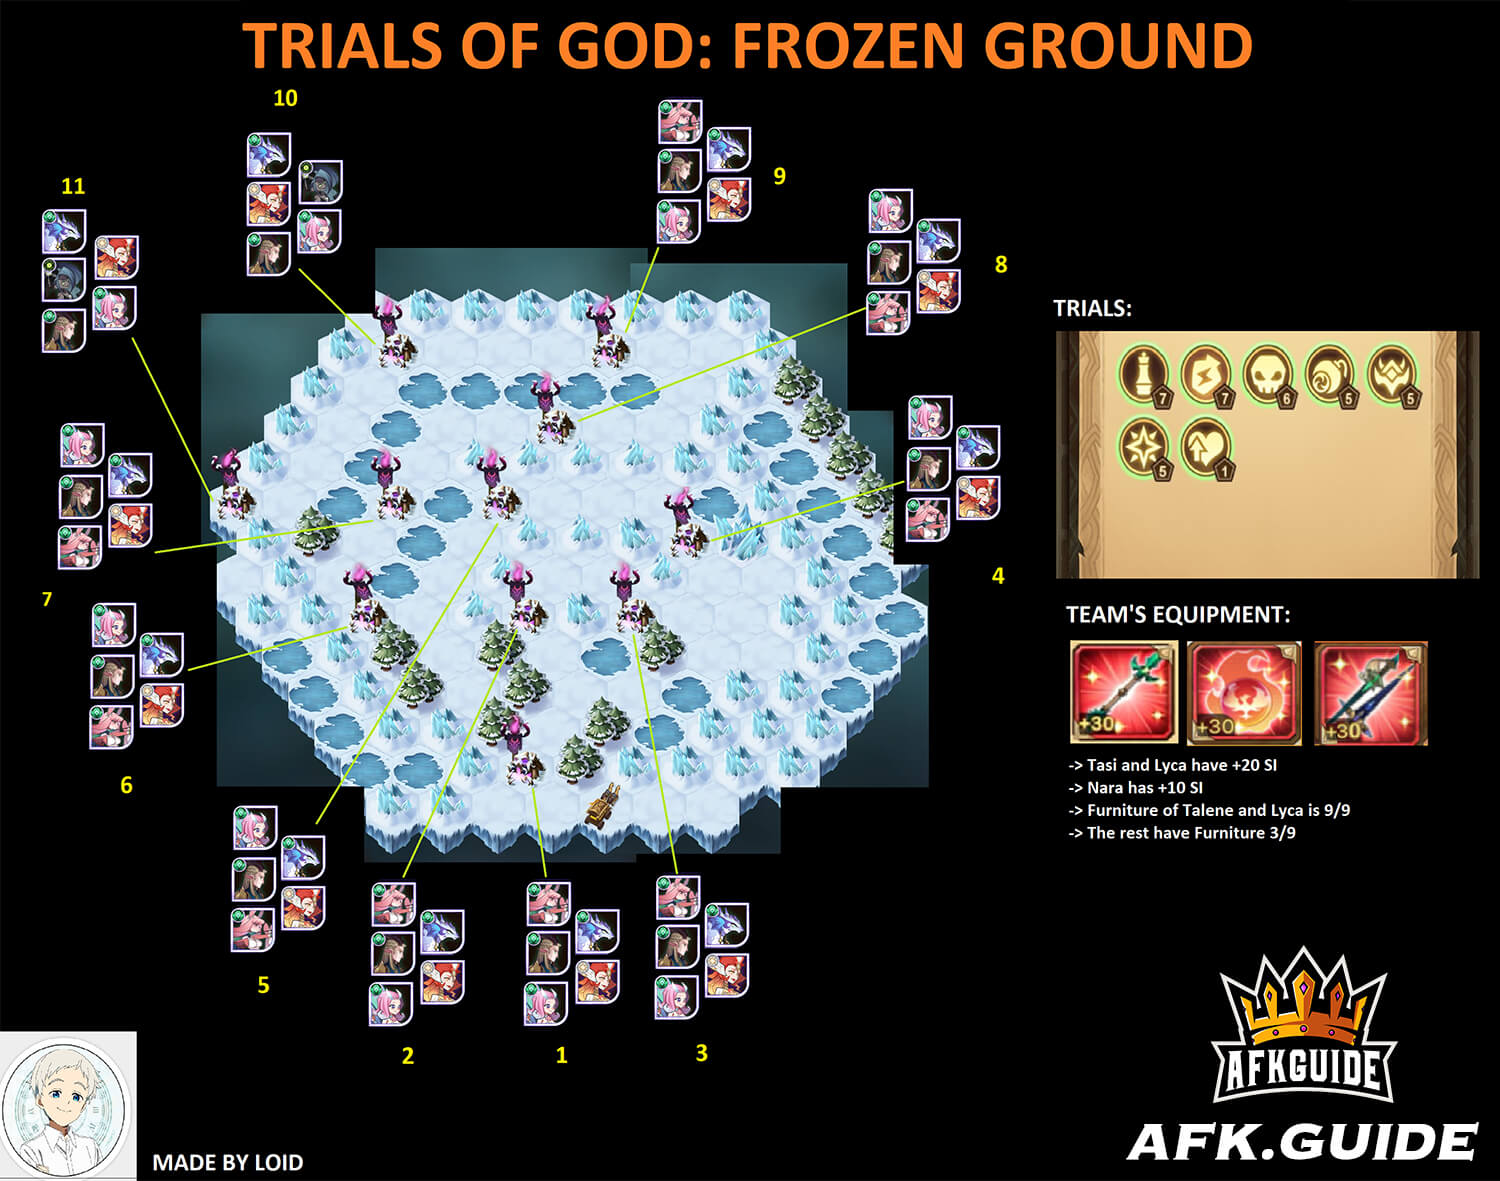 frozen ground trials of god guide